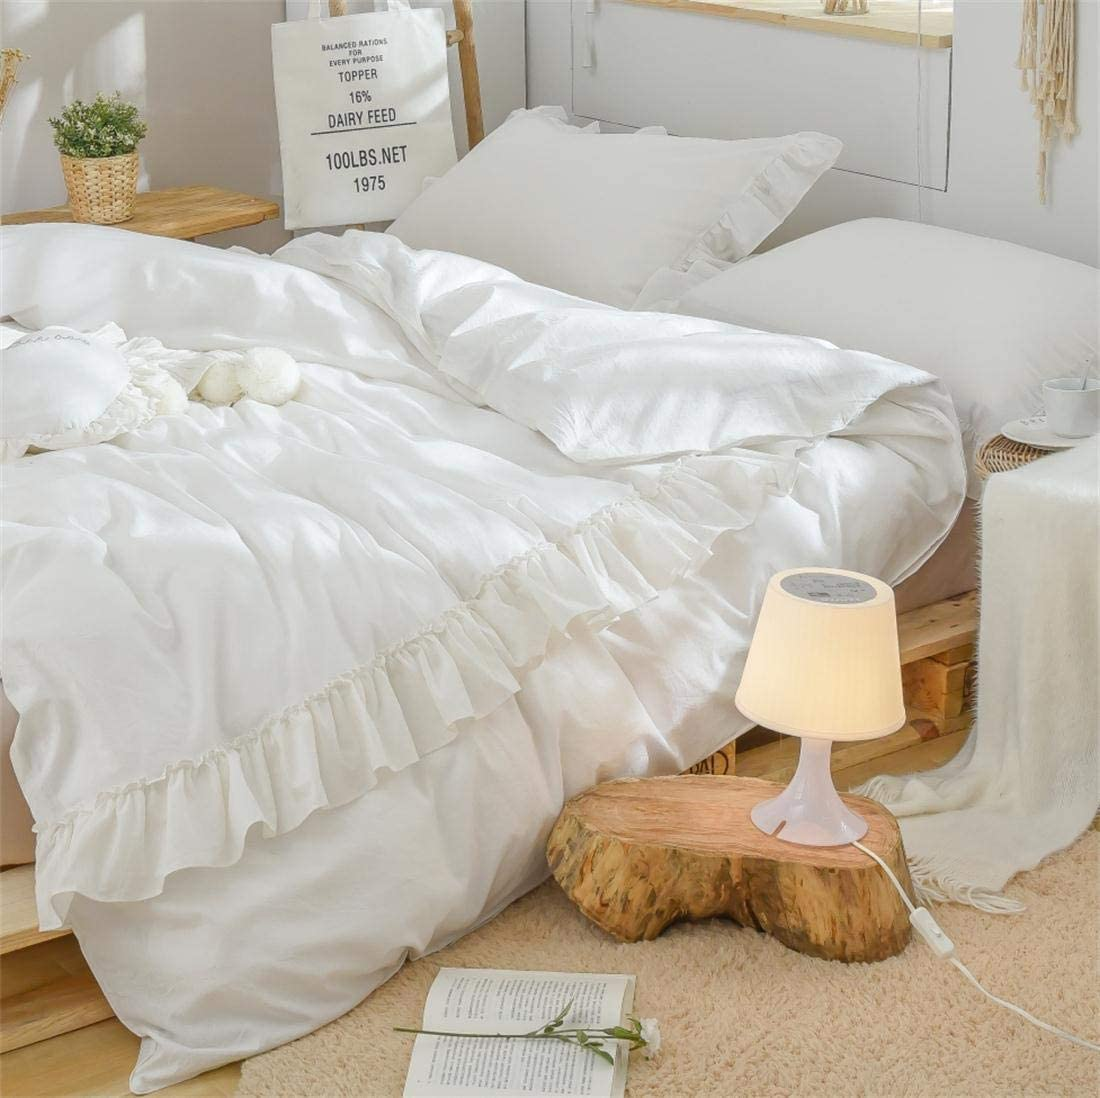 Softta California King Bedding White 3 Pcs Boho Duvet Cover Vintage and ShabbyRuffle Bohemian Quilt Cover 100% Washed Cotton Baby Teen Girls Bedding